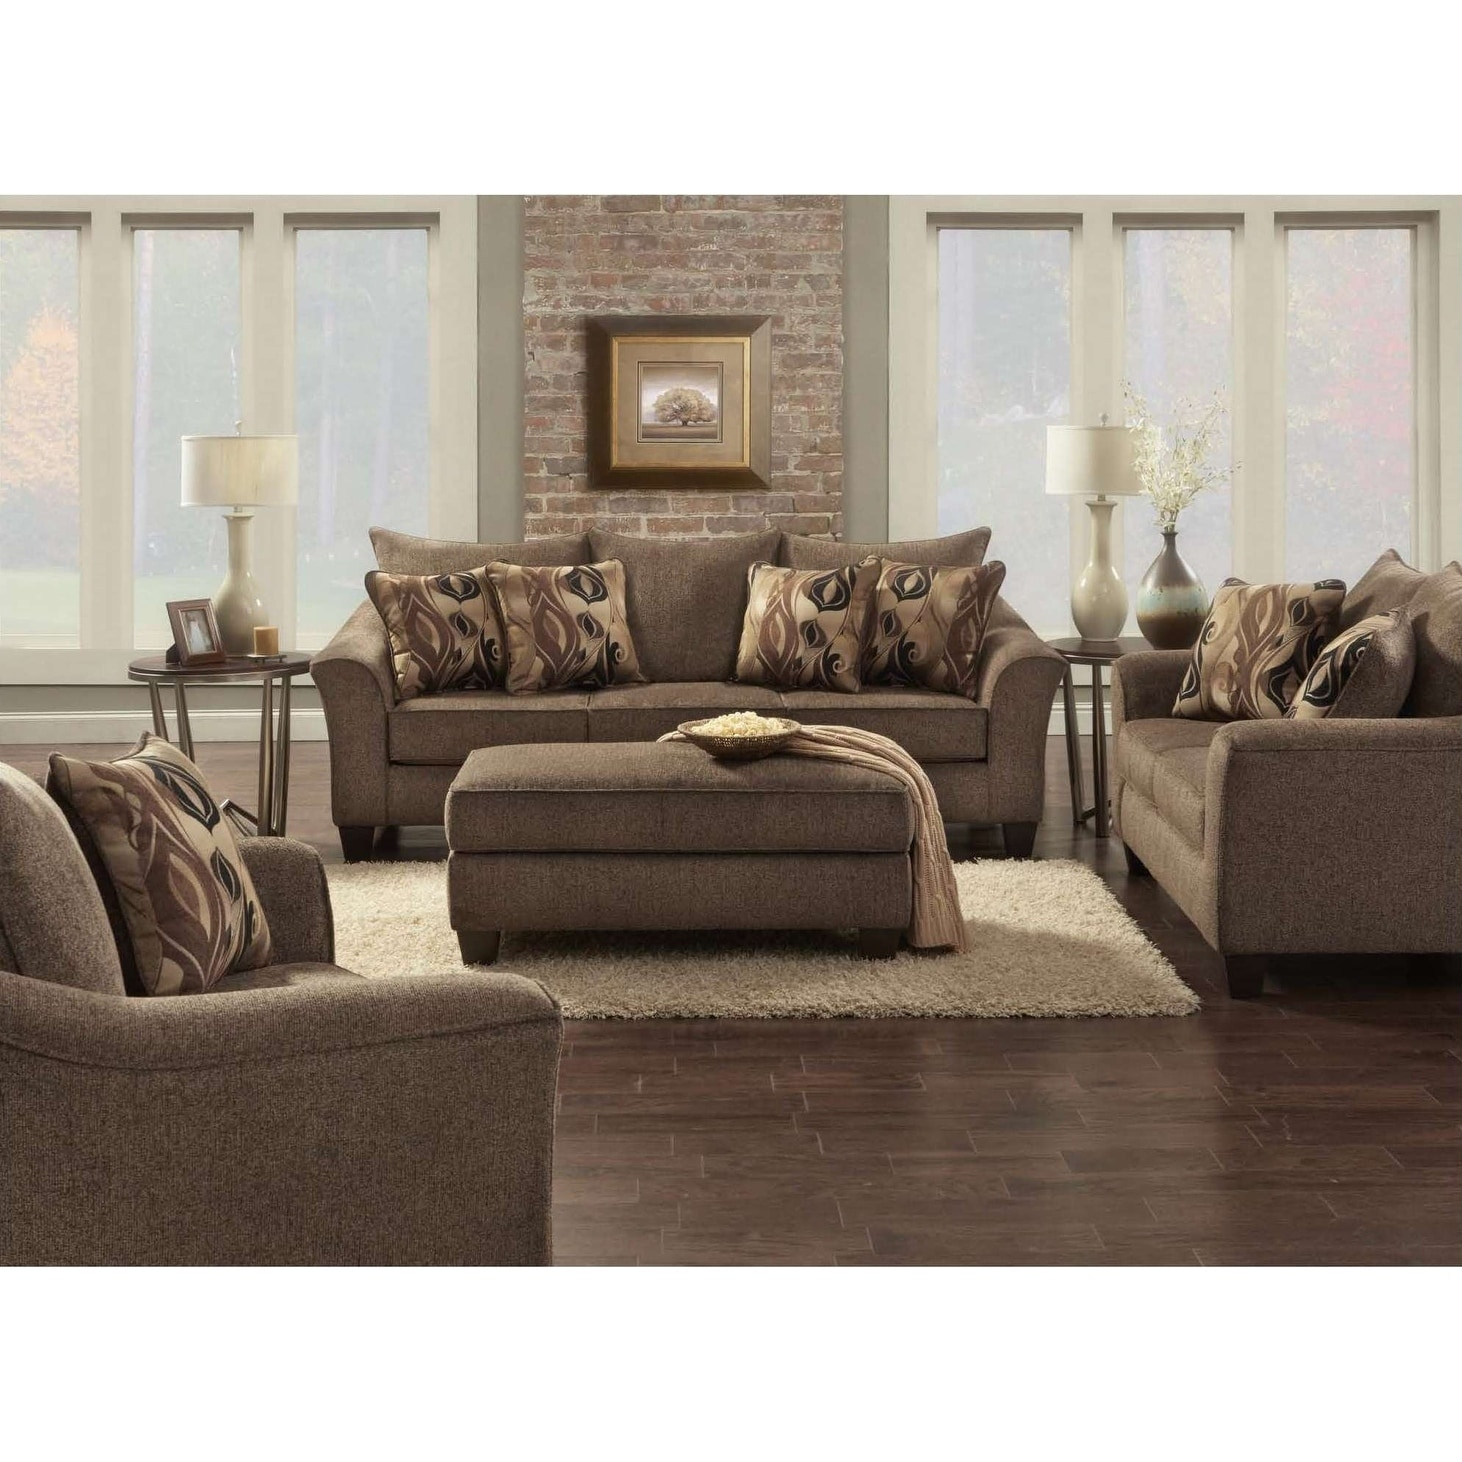 Shop sofatrendz cole cafe brown sofa loveseat ottoman 3 pc set free shipping today overstock com 19838830